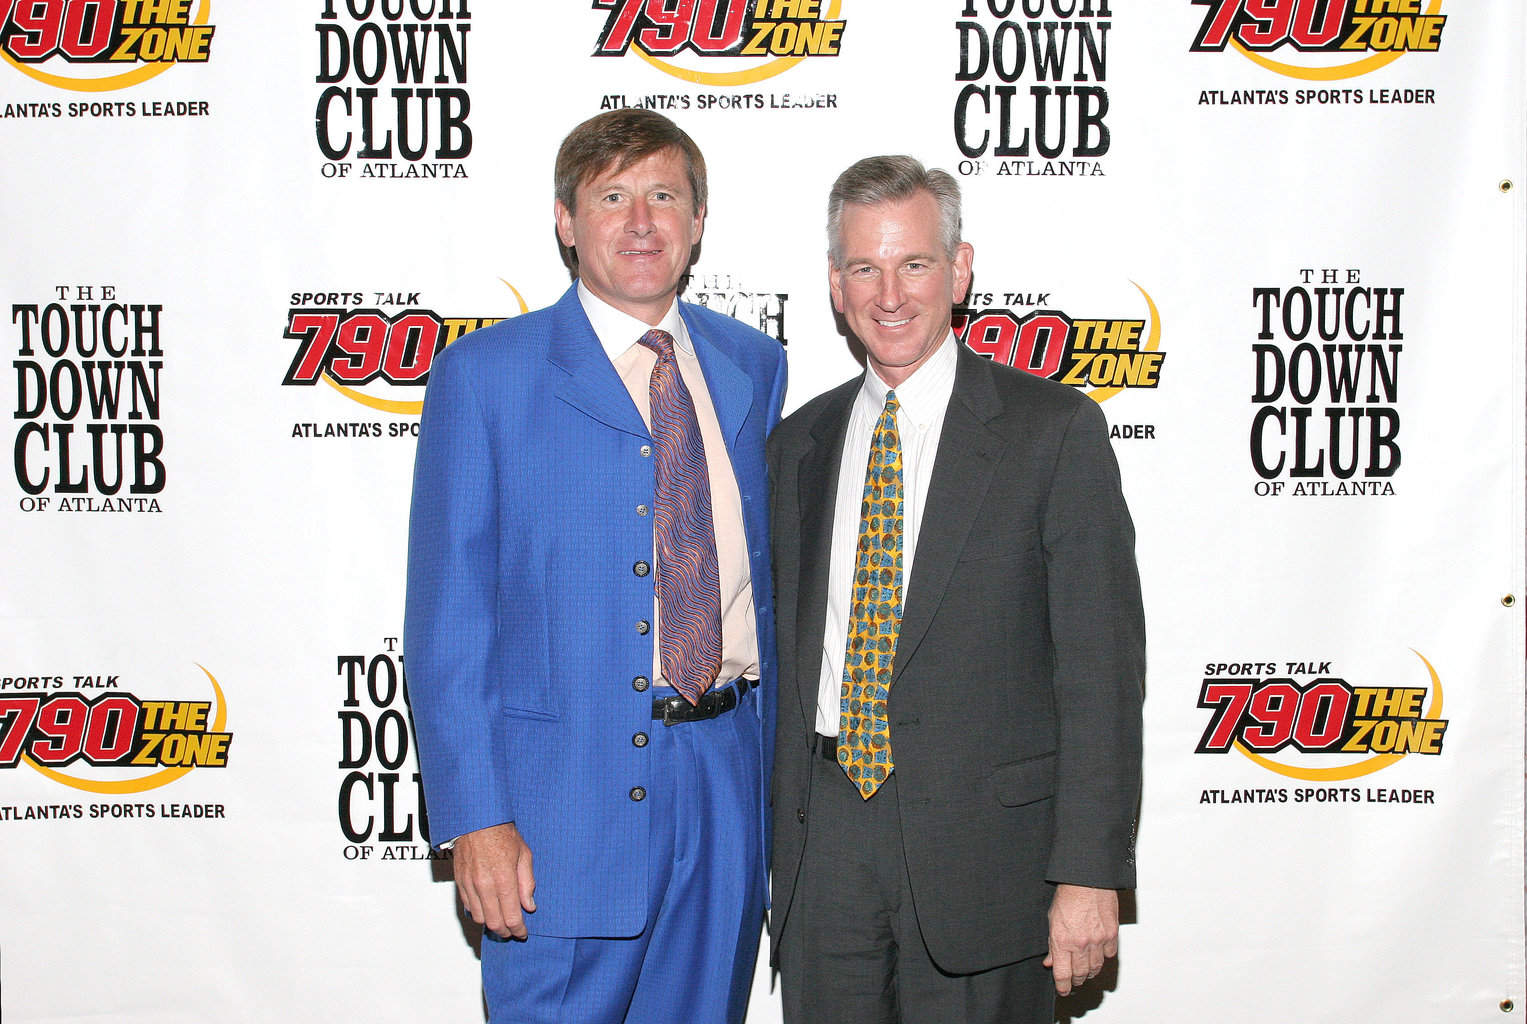 11-1-04 Craig Sager & Tommy Bowden